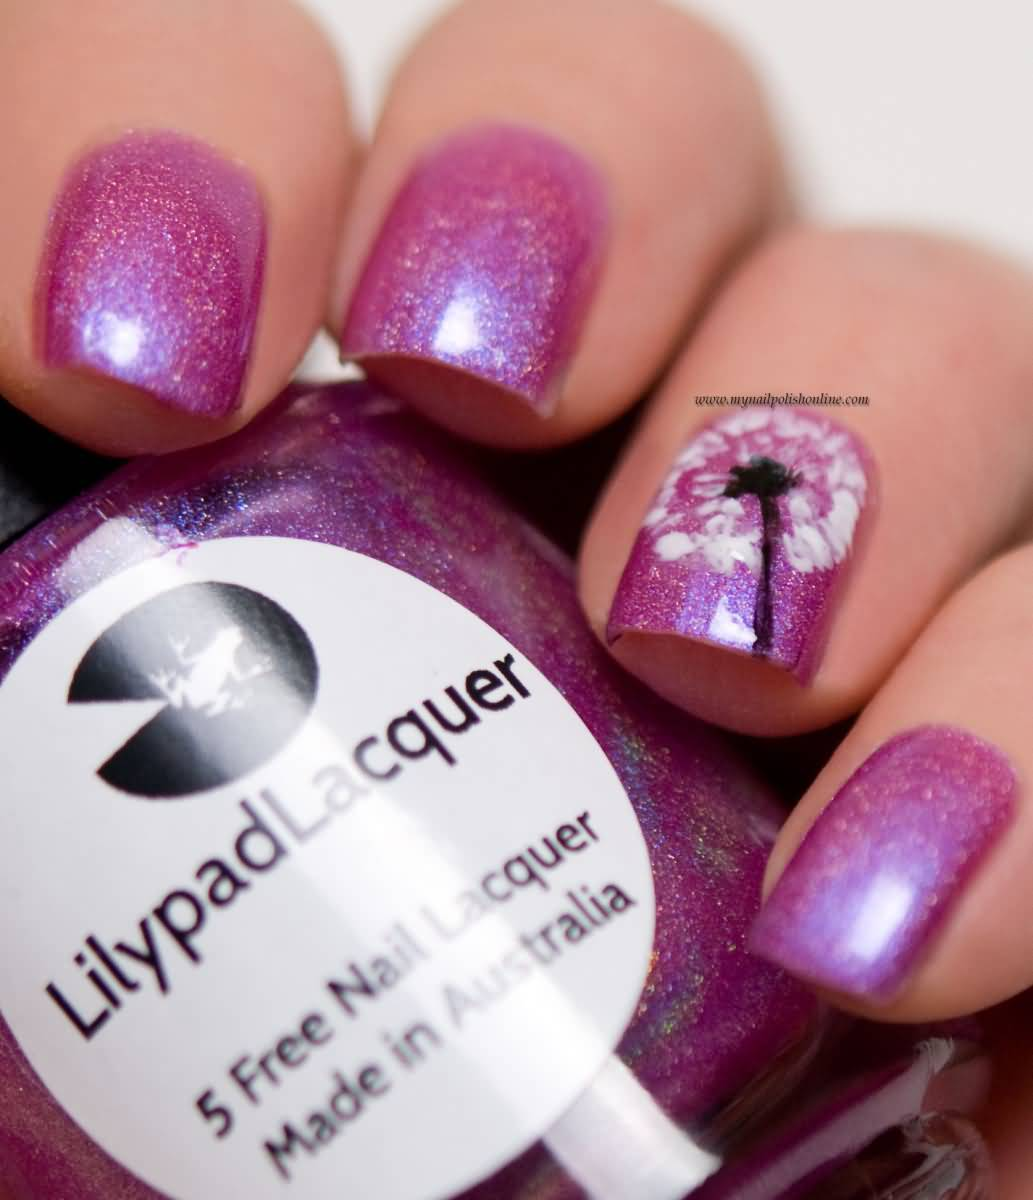 51+ Very Beautiful Accent Nail Art Design Ideas